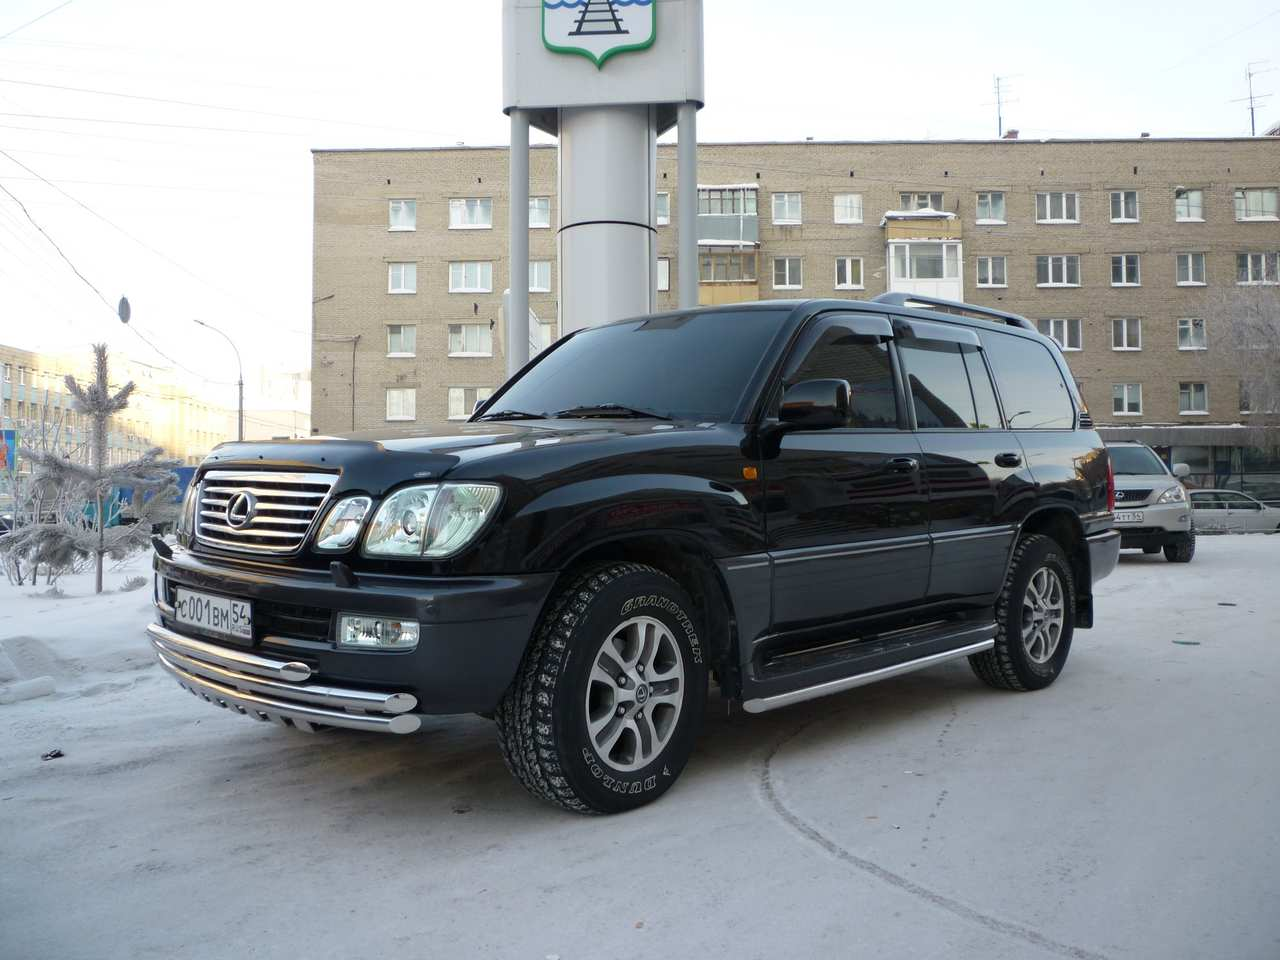 2006 lexus suv with Lexus Lx470 A1275831011b3708878 P on Picture30 together with Civic   Rodas Aro 20 3 also Photos moreover Toyota Wish further Lexus lx470 a1275831011b3708878 p.